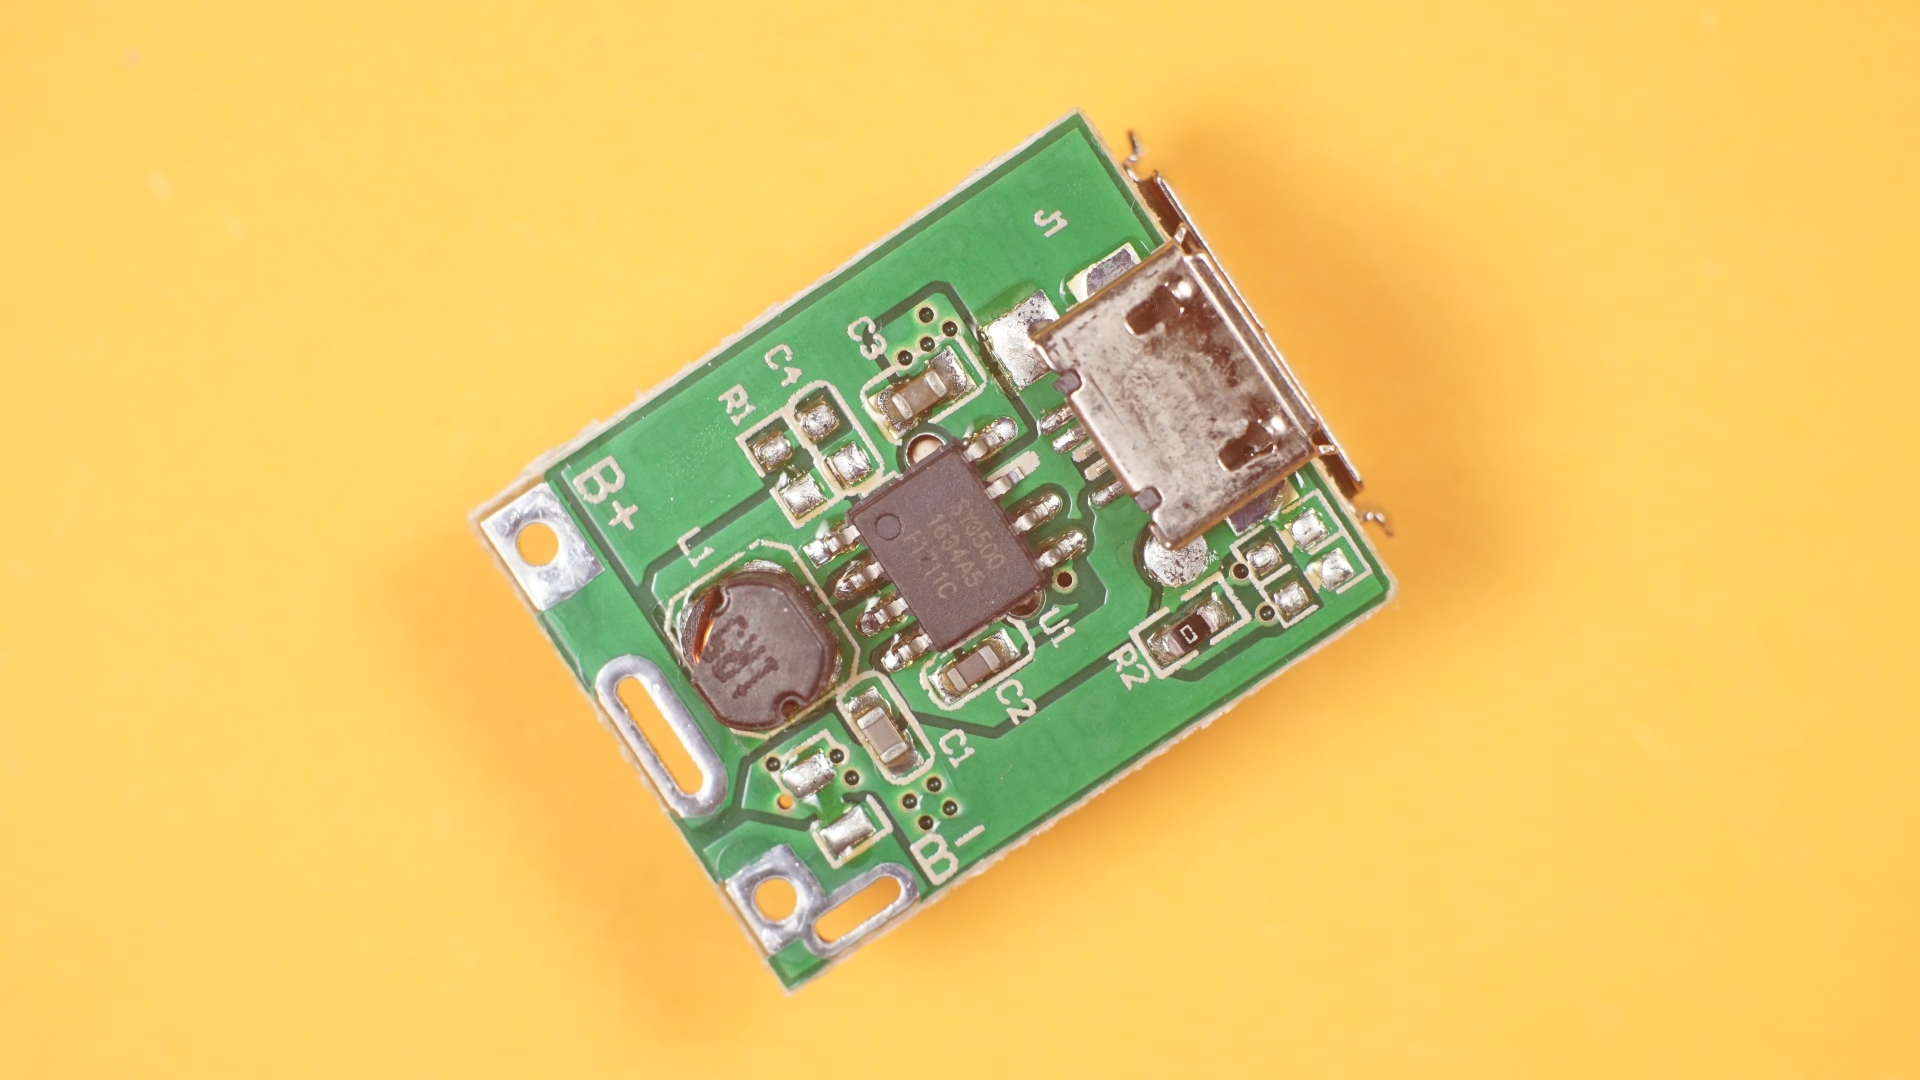 Picture of Remove USB Connectors From the Power Bank Board